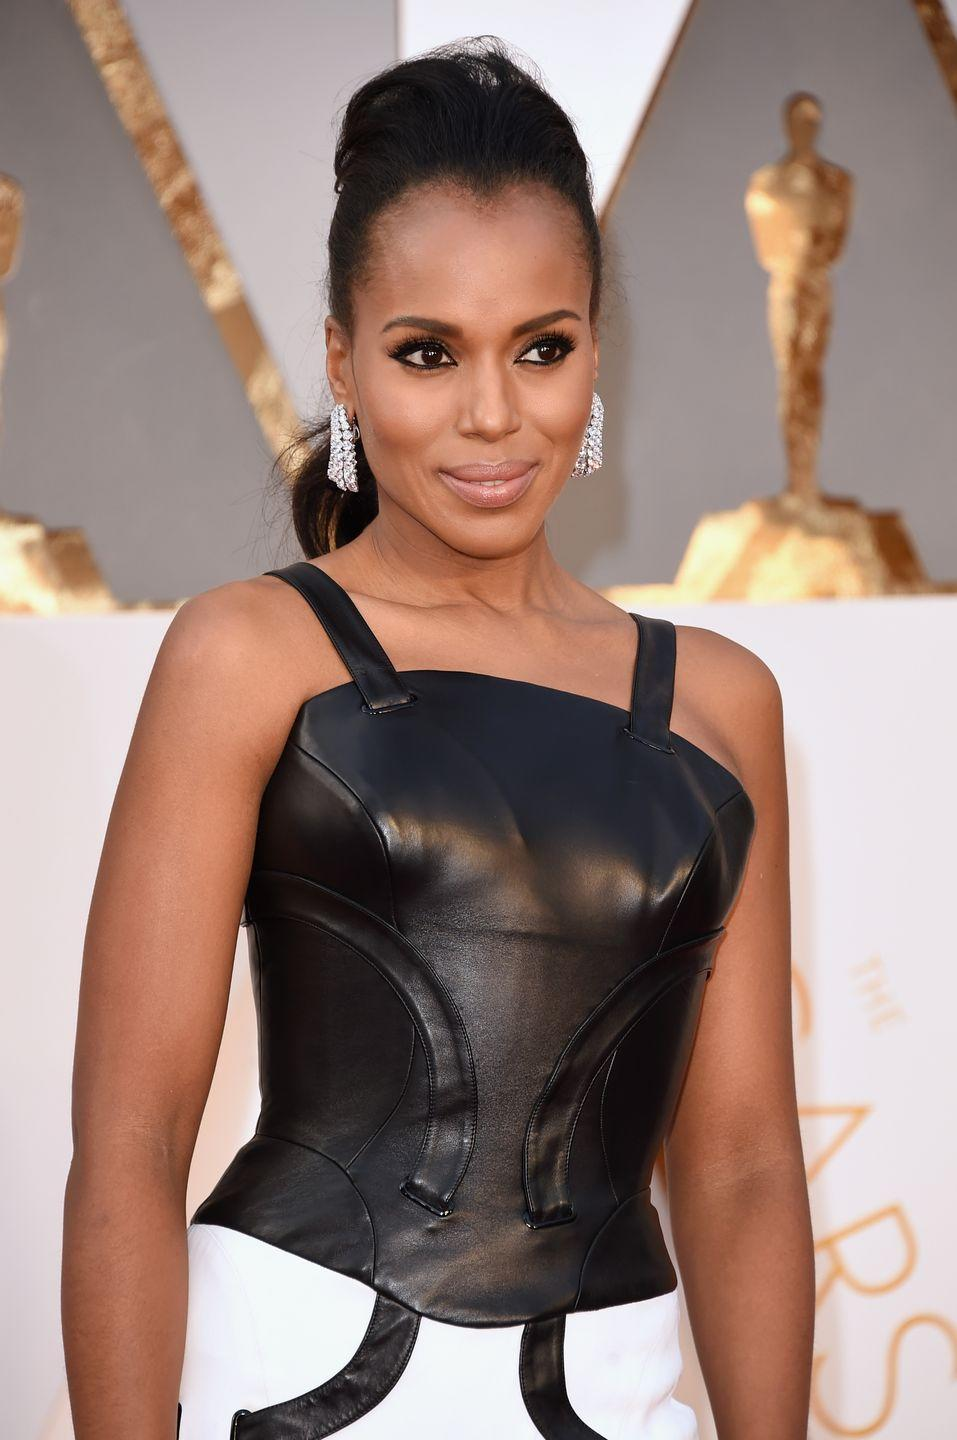 <p>That's right, <em>Fantastic Four</em> gets two entries on the list because what on <em>earth</em> was Kerry Washington doing there?</p>